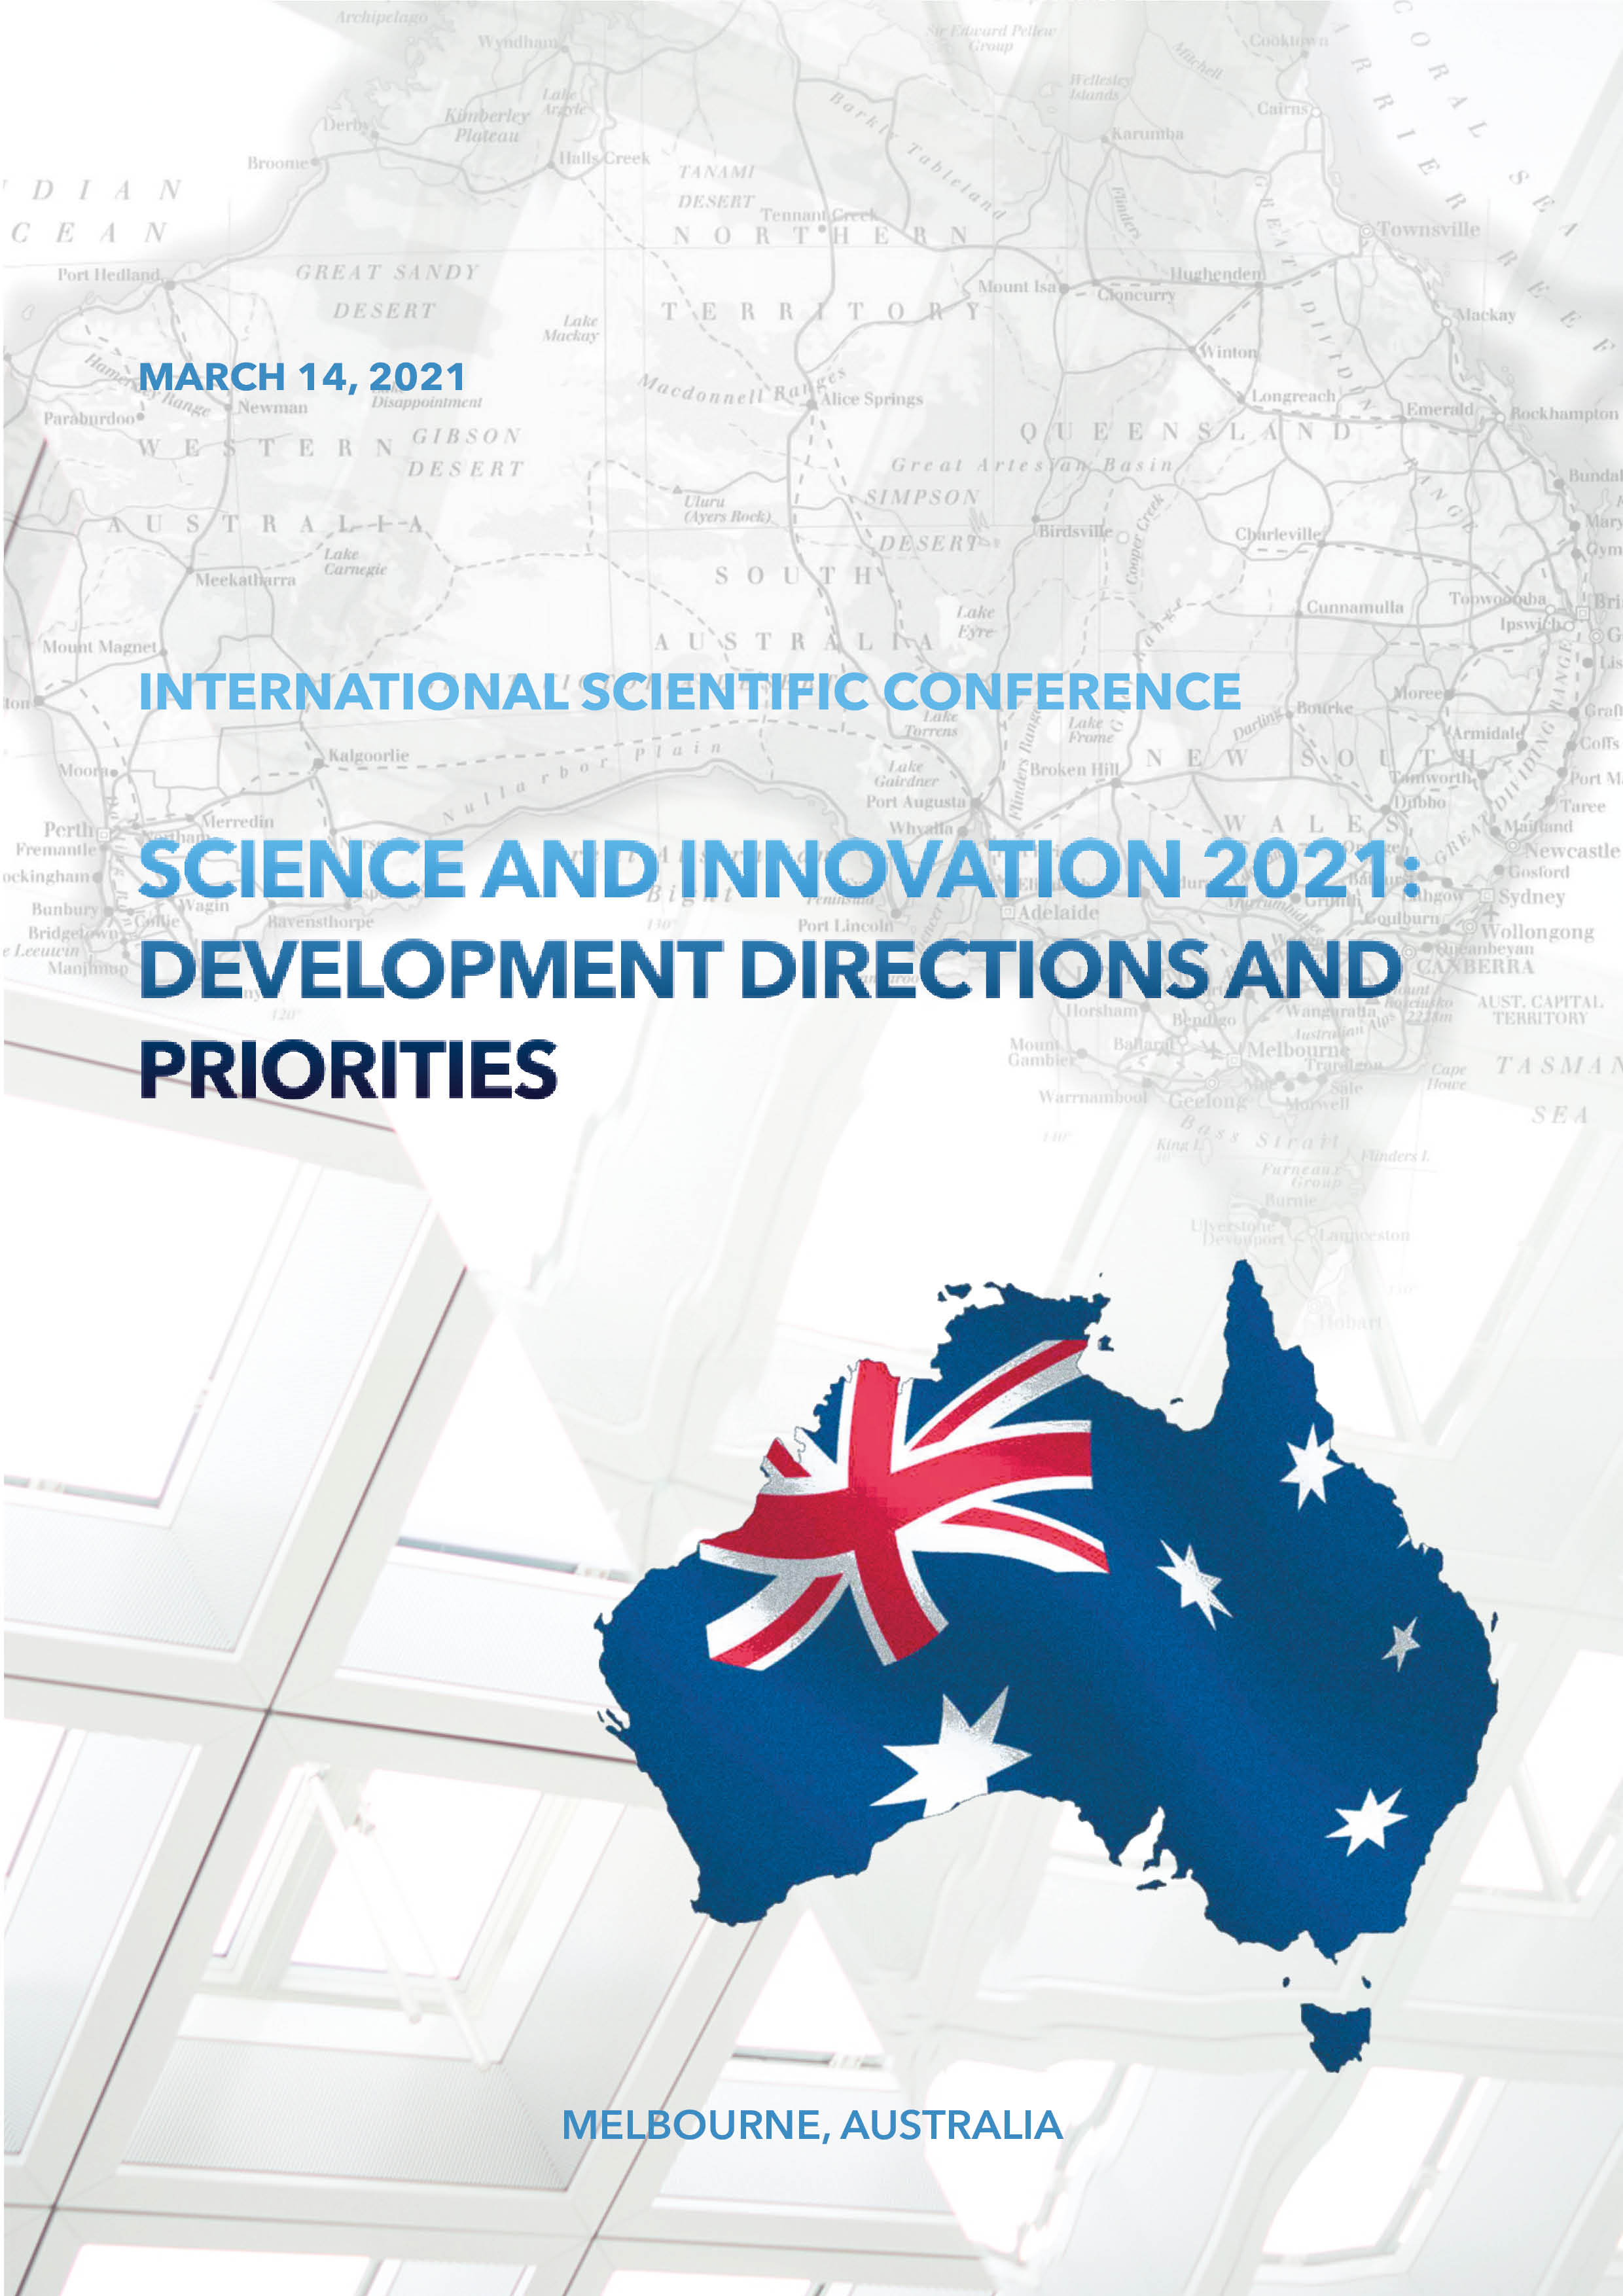 SCIENCE AND INNOVATION 2021: DEVELOPMENT DIRECTIONS AND PRIORITIES. Vol.II